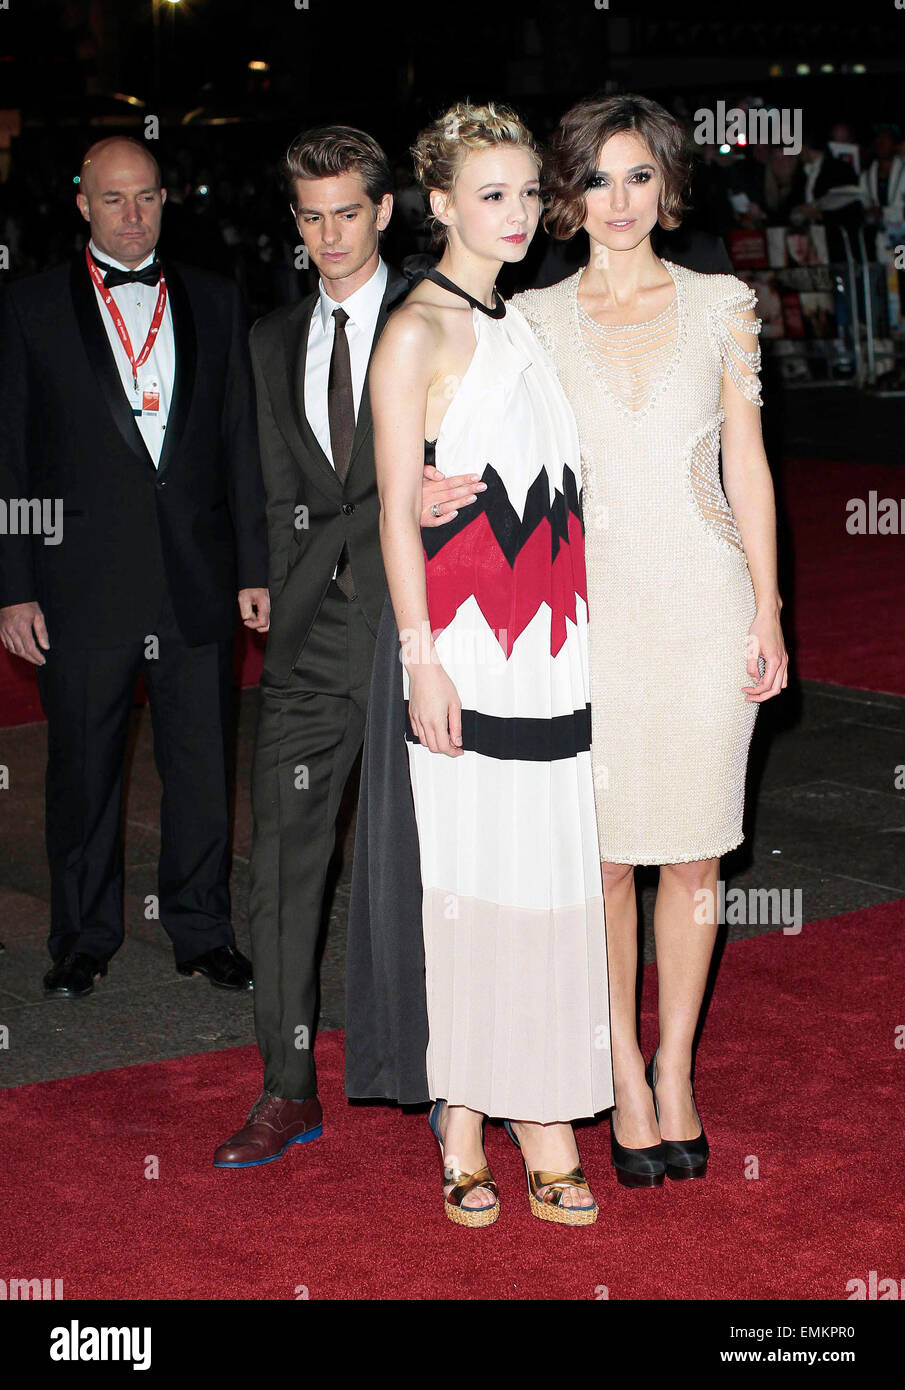 13.OCTOBER.2010 - LONDON  KEIRA KNIGHTLEY, CAREY MULLIGAN AND ANDREW GARFIELD ATTEND THE UK PREMIERE OF THEIR NEW - Stock Image